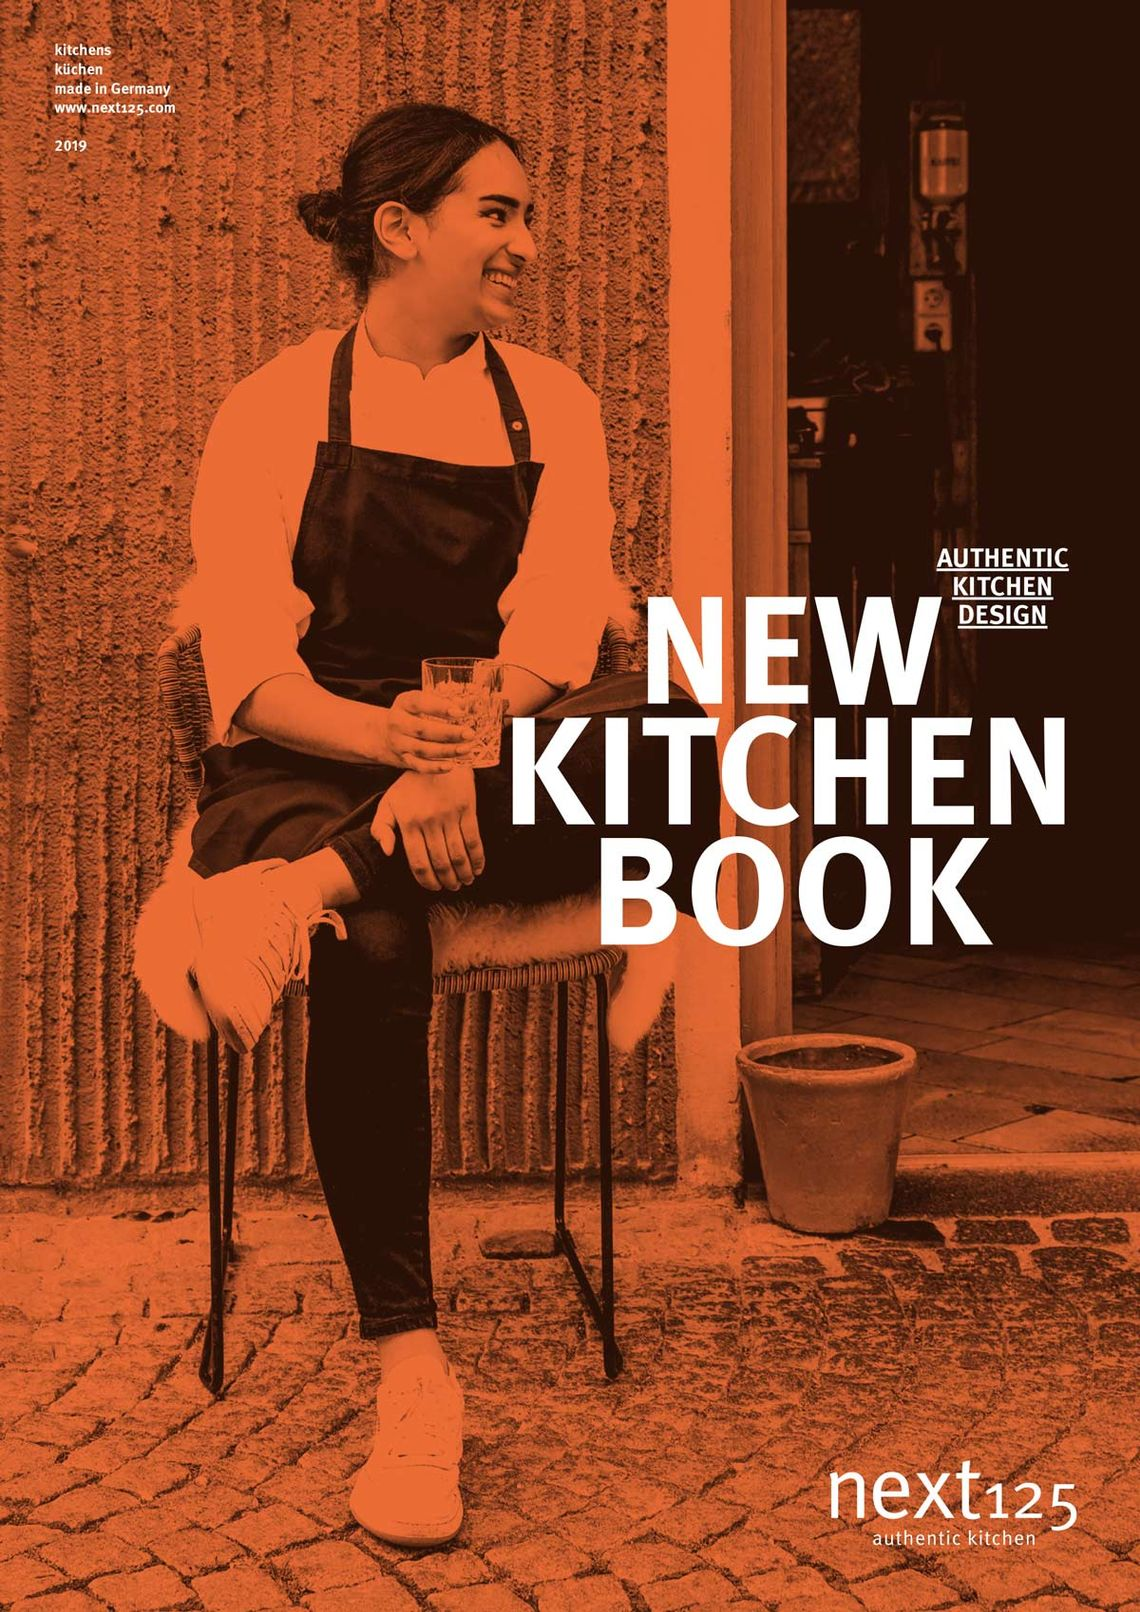 next125 Katalog 2019 - NEW KITCHEN BOOK